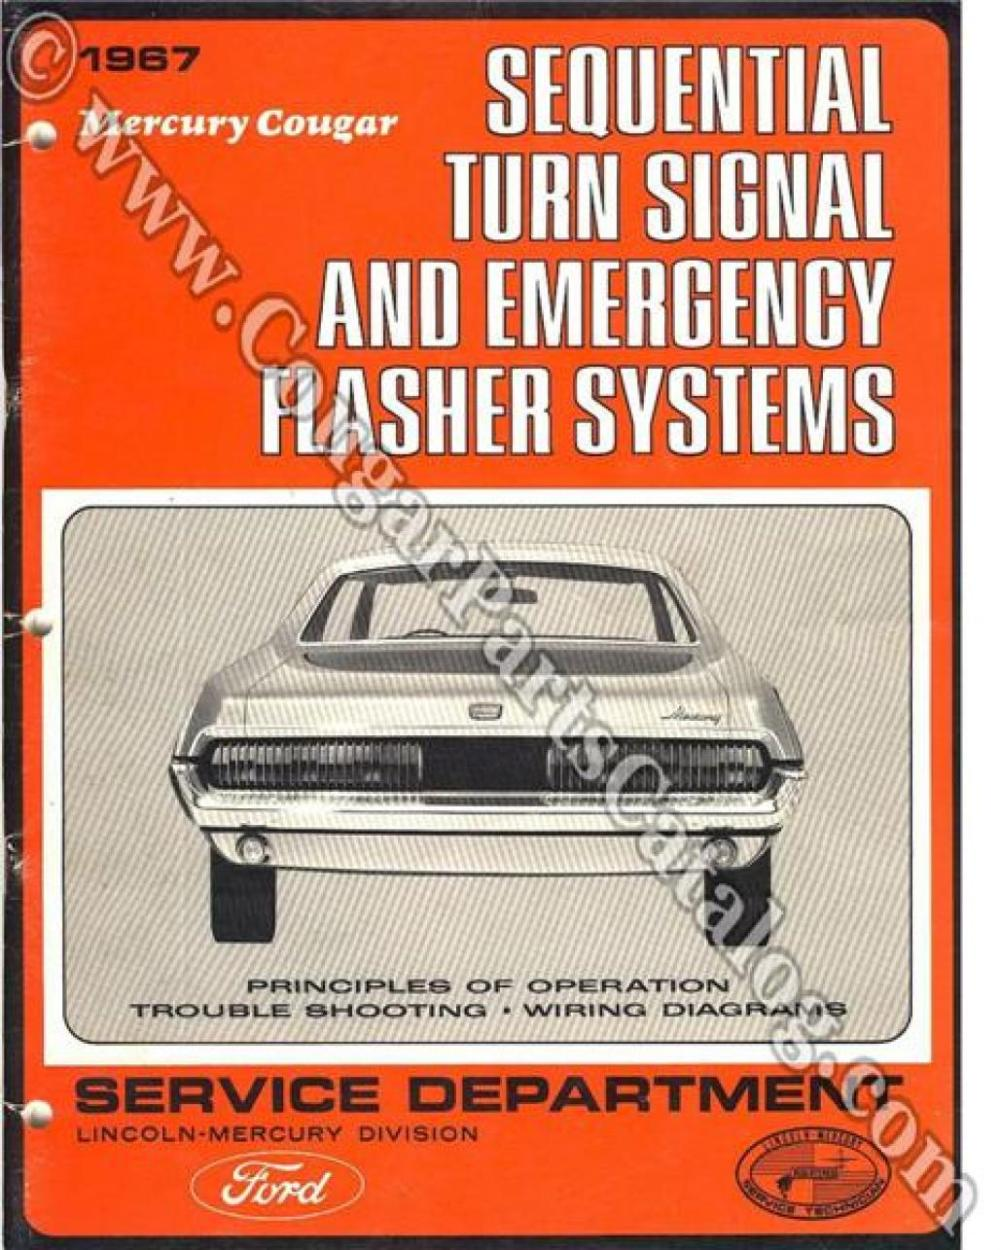 medium resolution of manual sequential turn signal service of operation free download 1967 mercury cougar 1967 mercury cougar at west coast classic cougar the